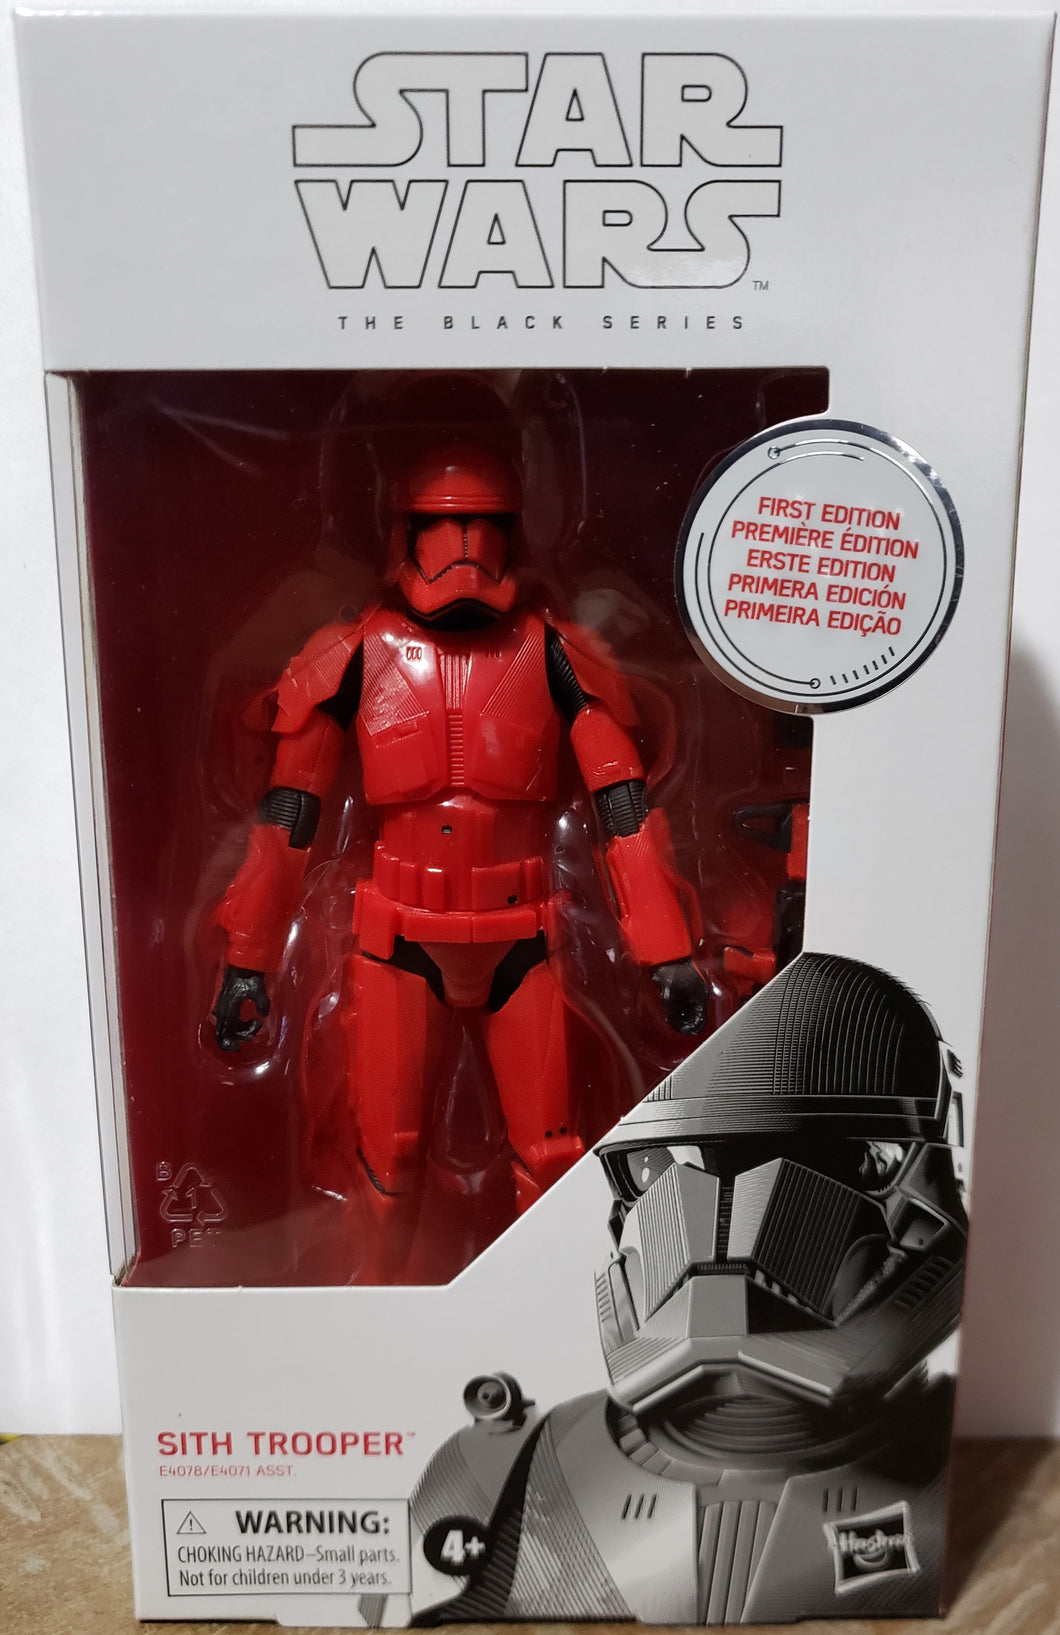 2019 The Black Series - Sith Trooper (First Edition) (6-inch figure)